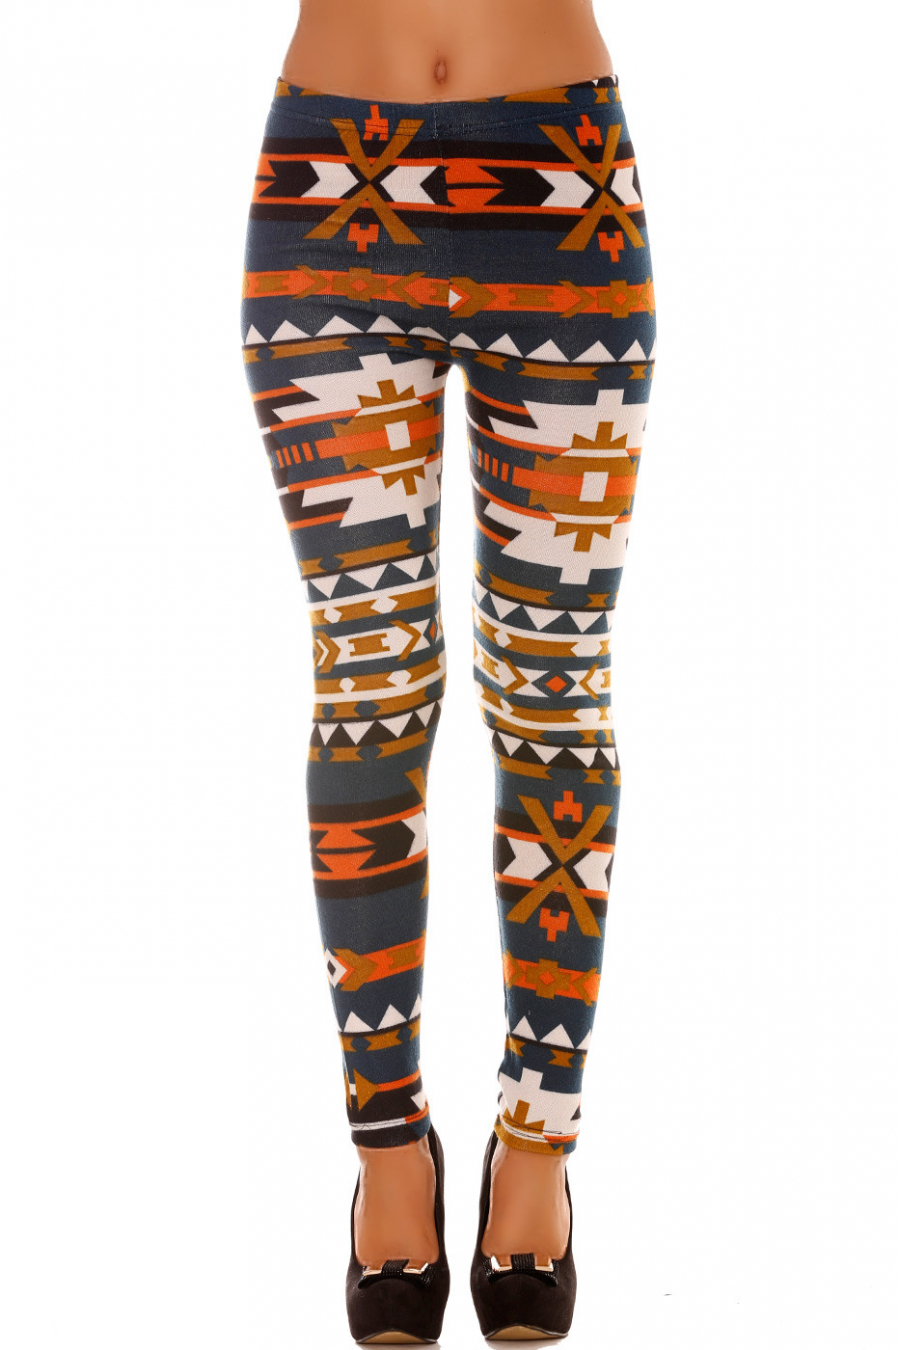 Colorful winter leggings in Duck and orange fancy patterns. Fashion style leggings. 113-1